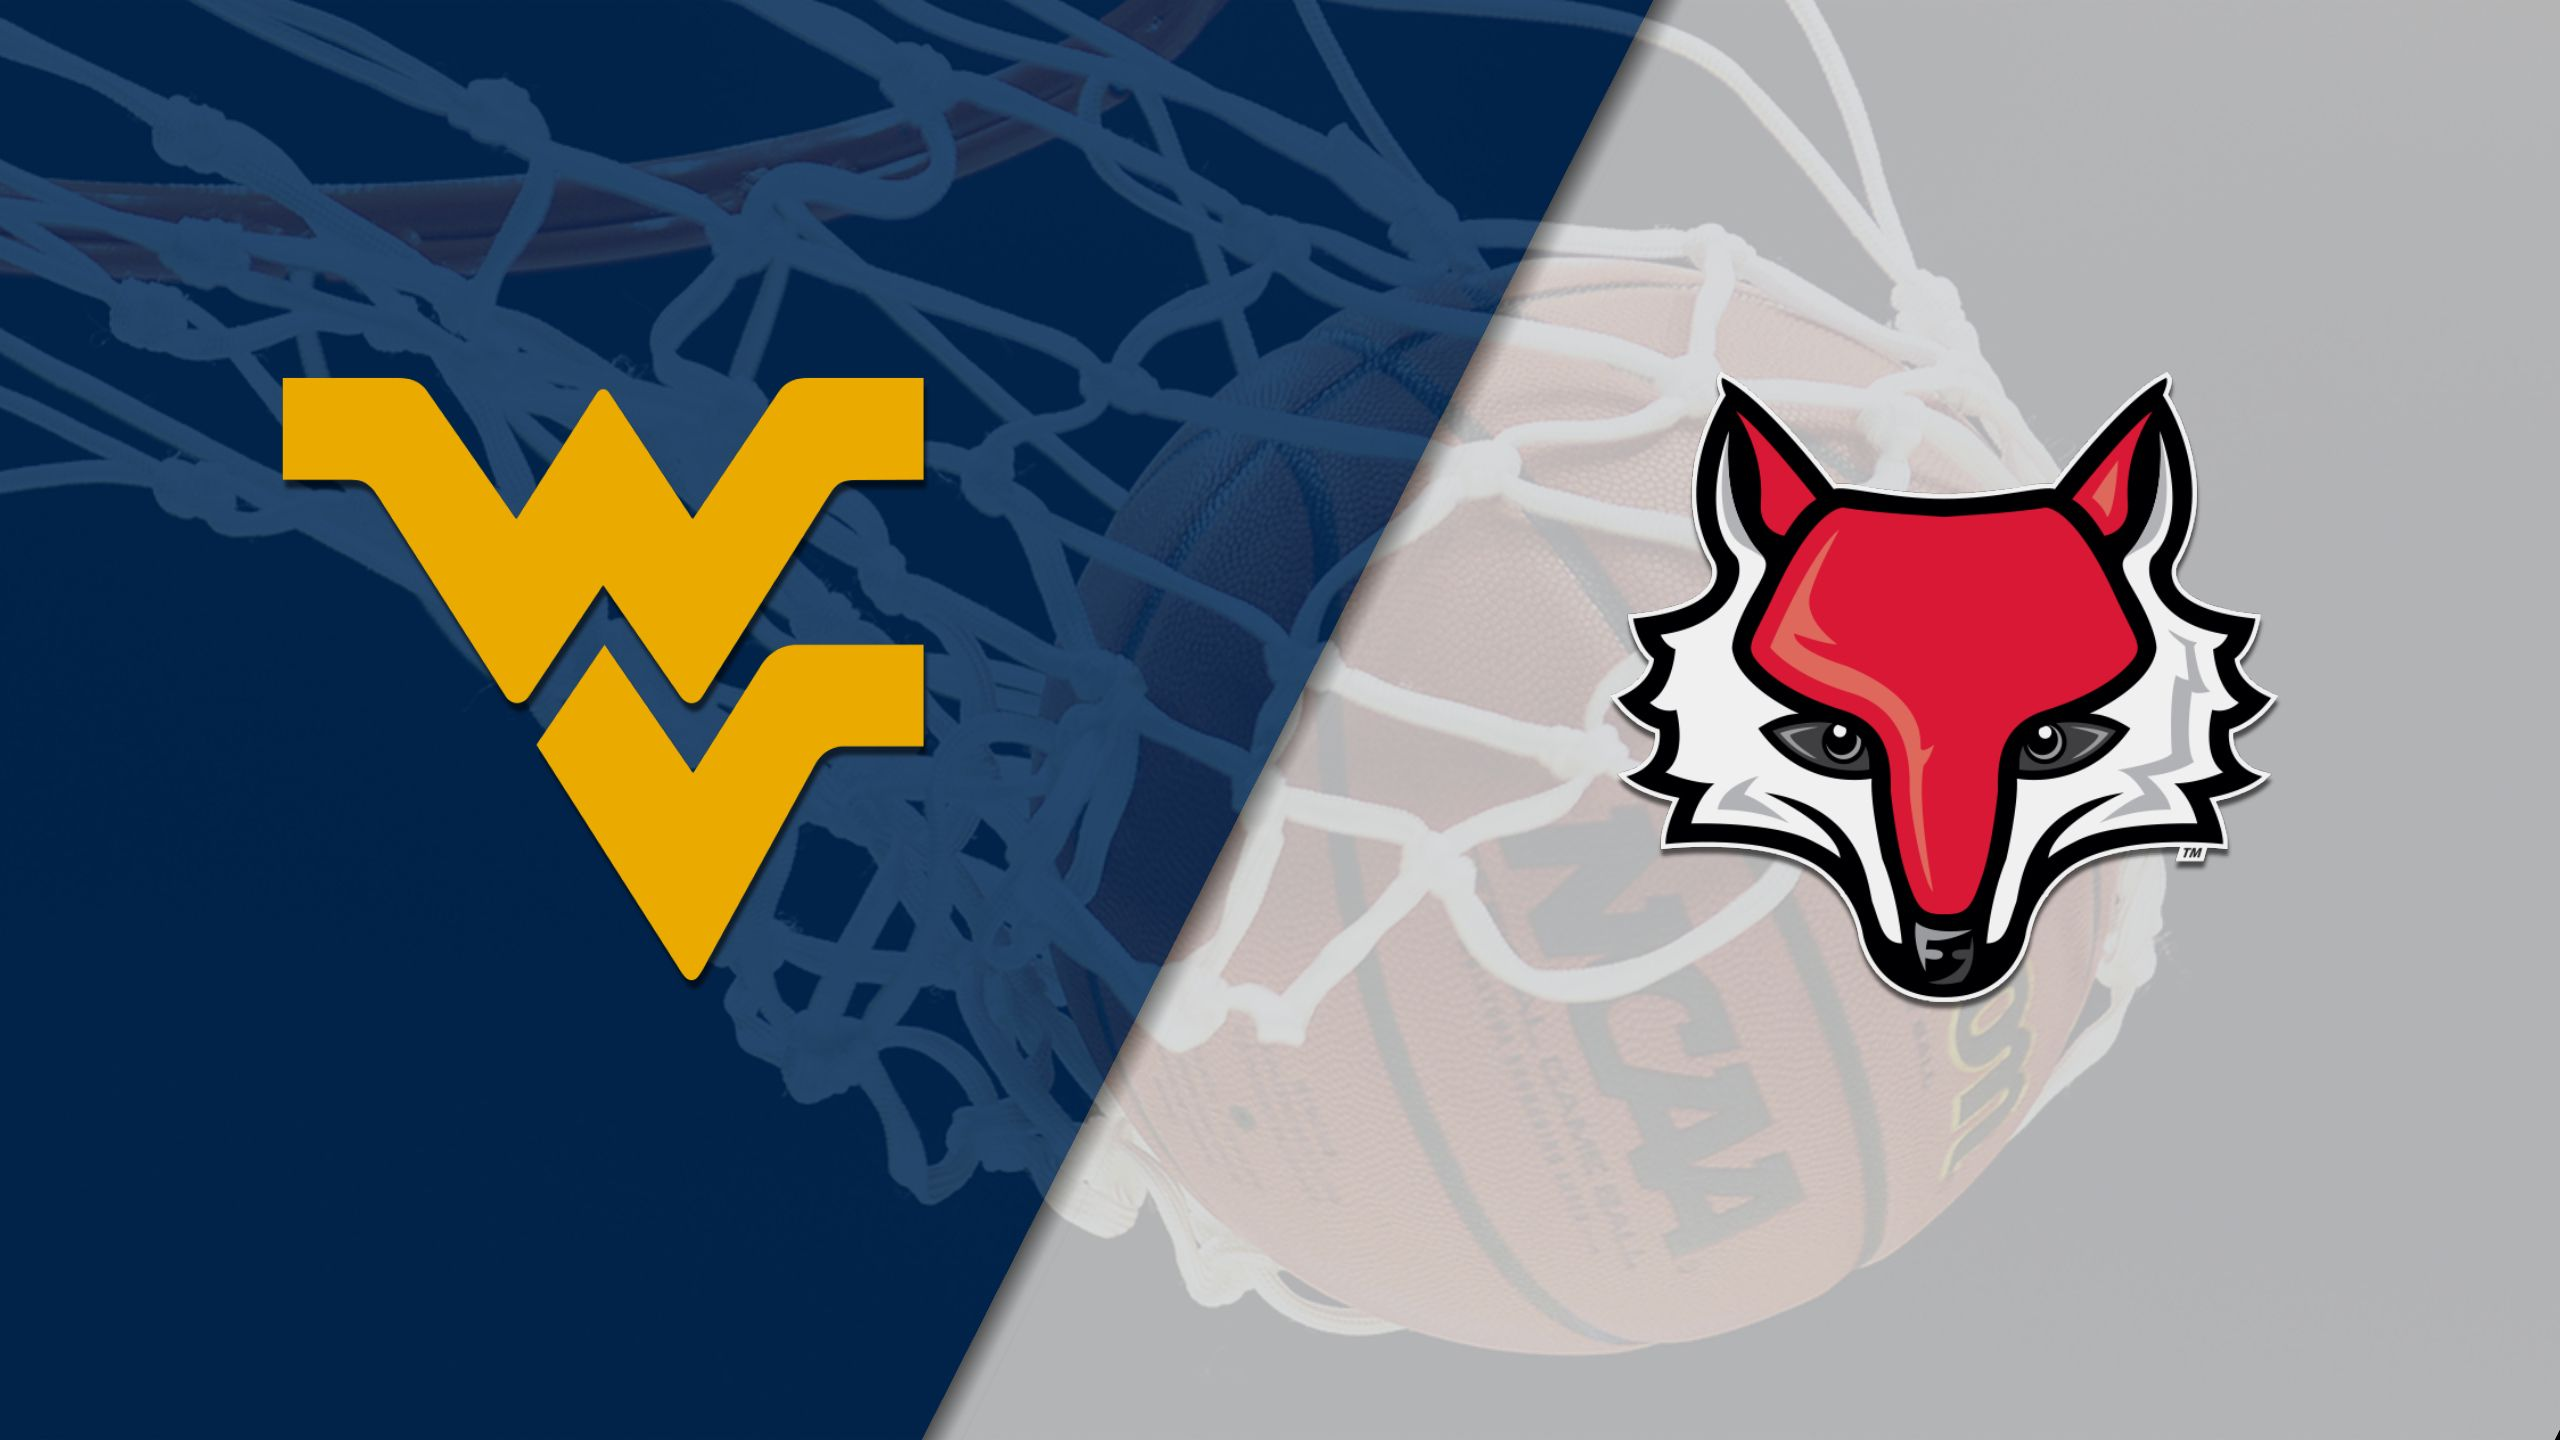 #23 West Virginia vs. Marist (Quarterfinal #4) (Advocare Invitational)